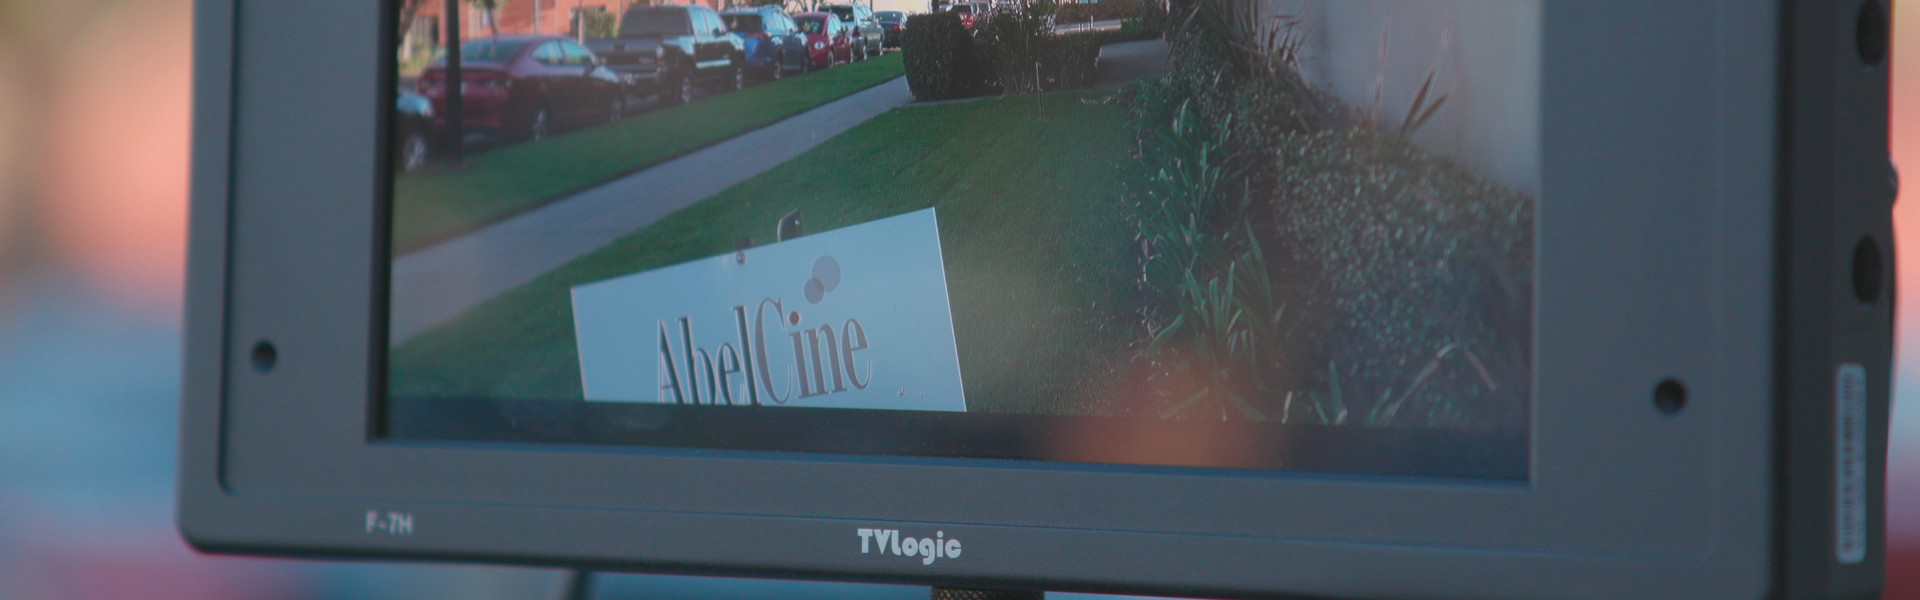 Header image for article Testing the New TVLogic F-7H HDR Monitor in the Field